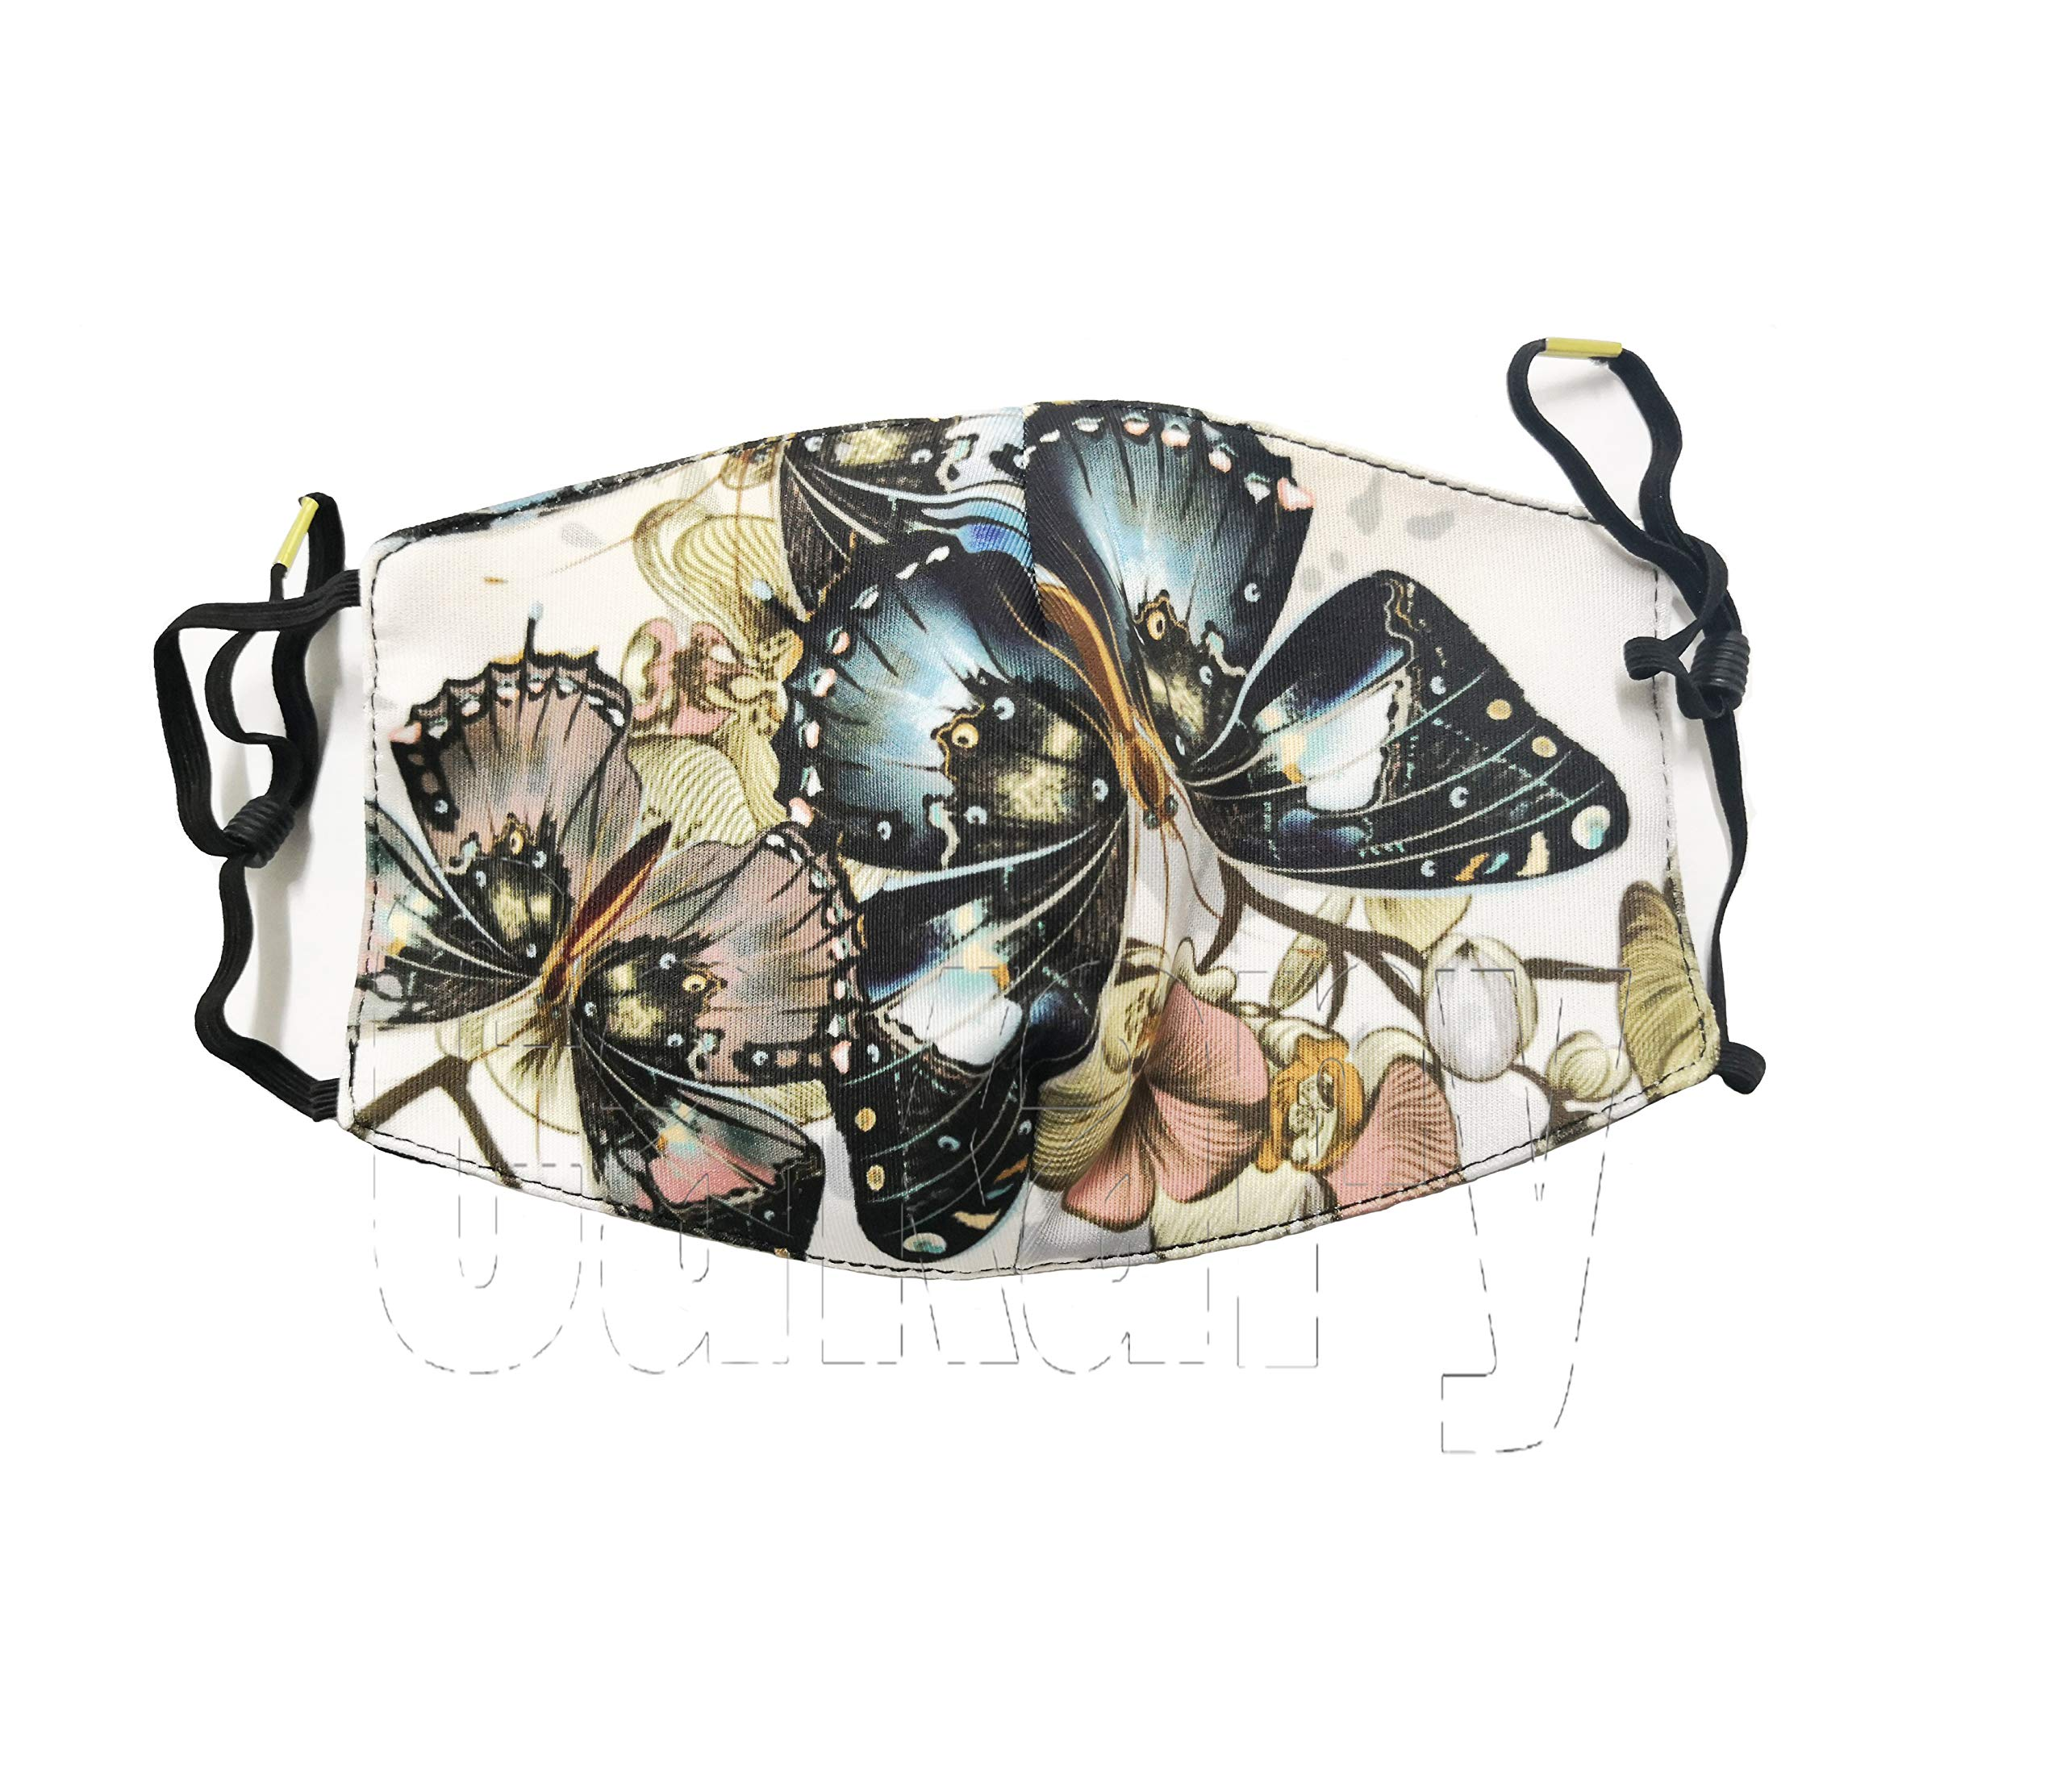 N7bloom Boys Winter Warm Mouth Anti-Dust Flu Face Mask Orchid Butterfly by N7bloom (Image #6)